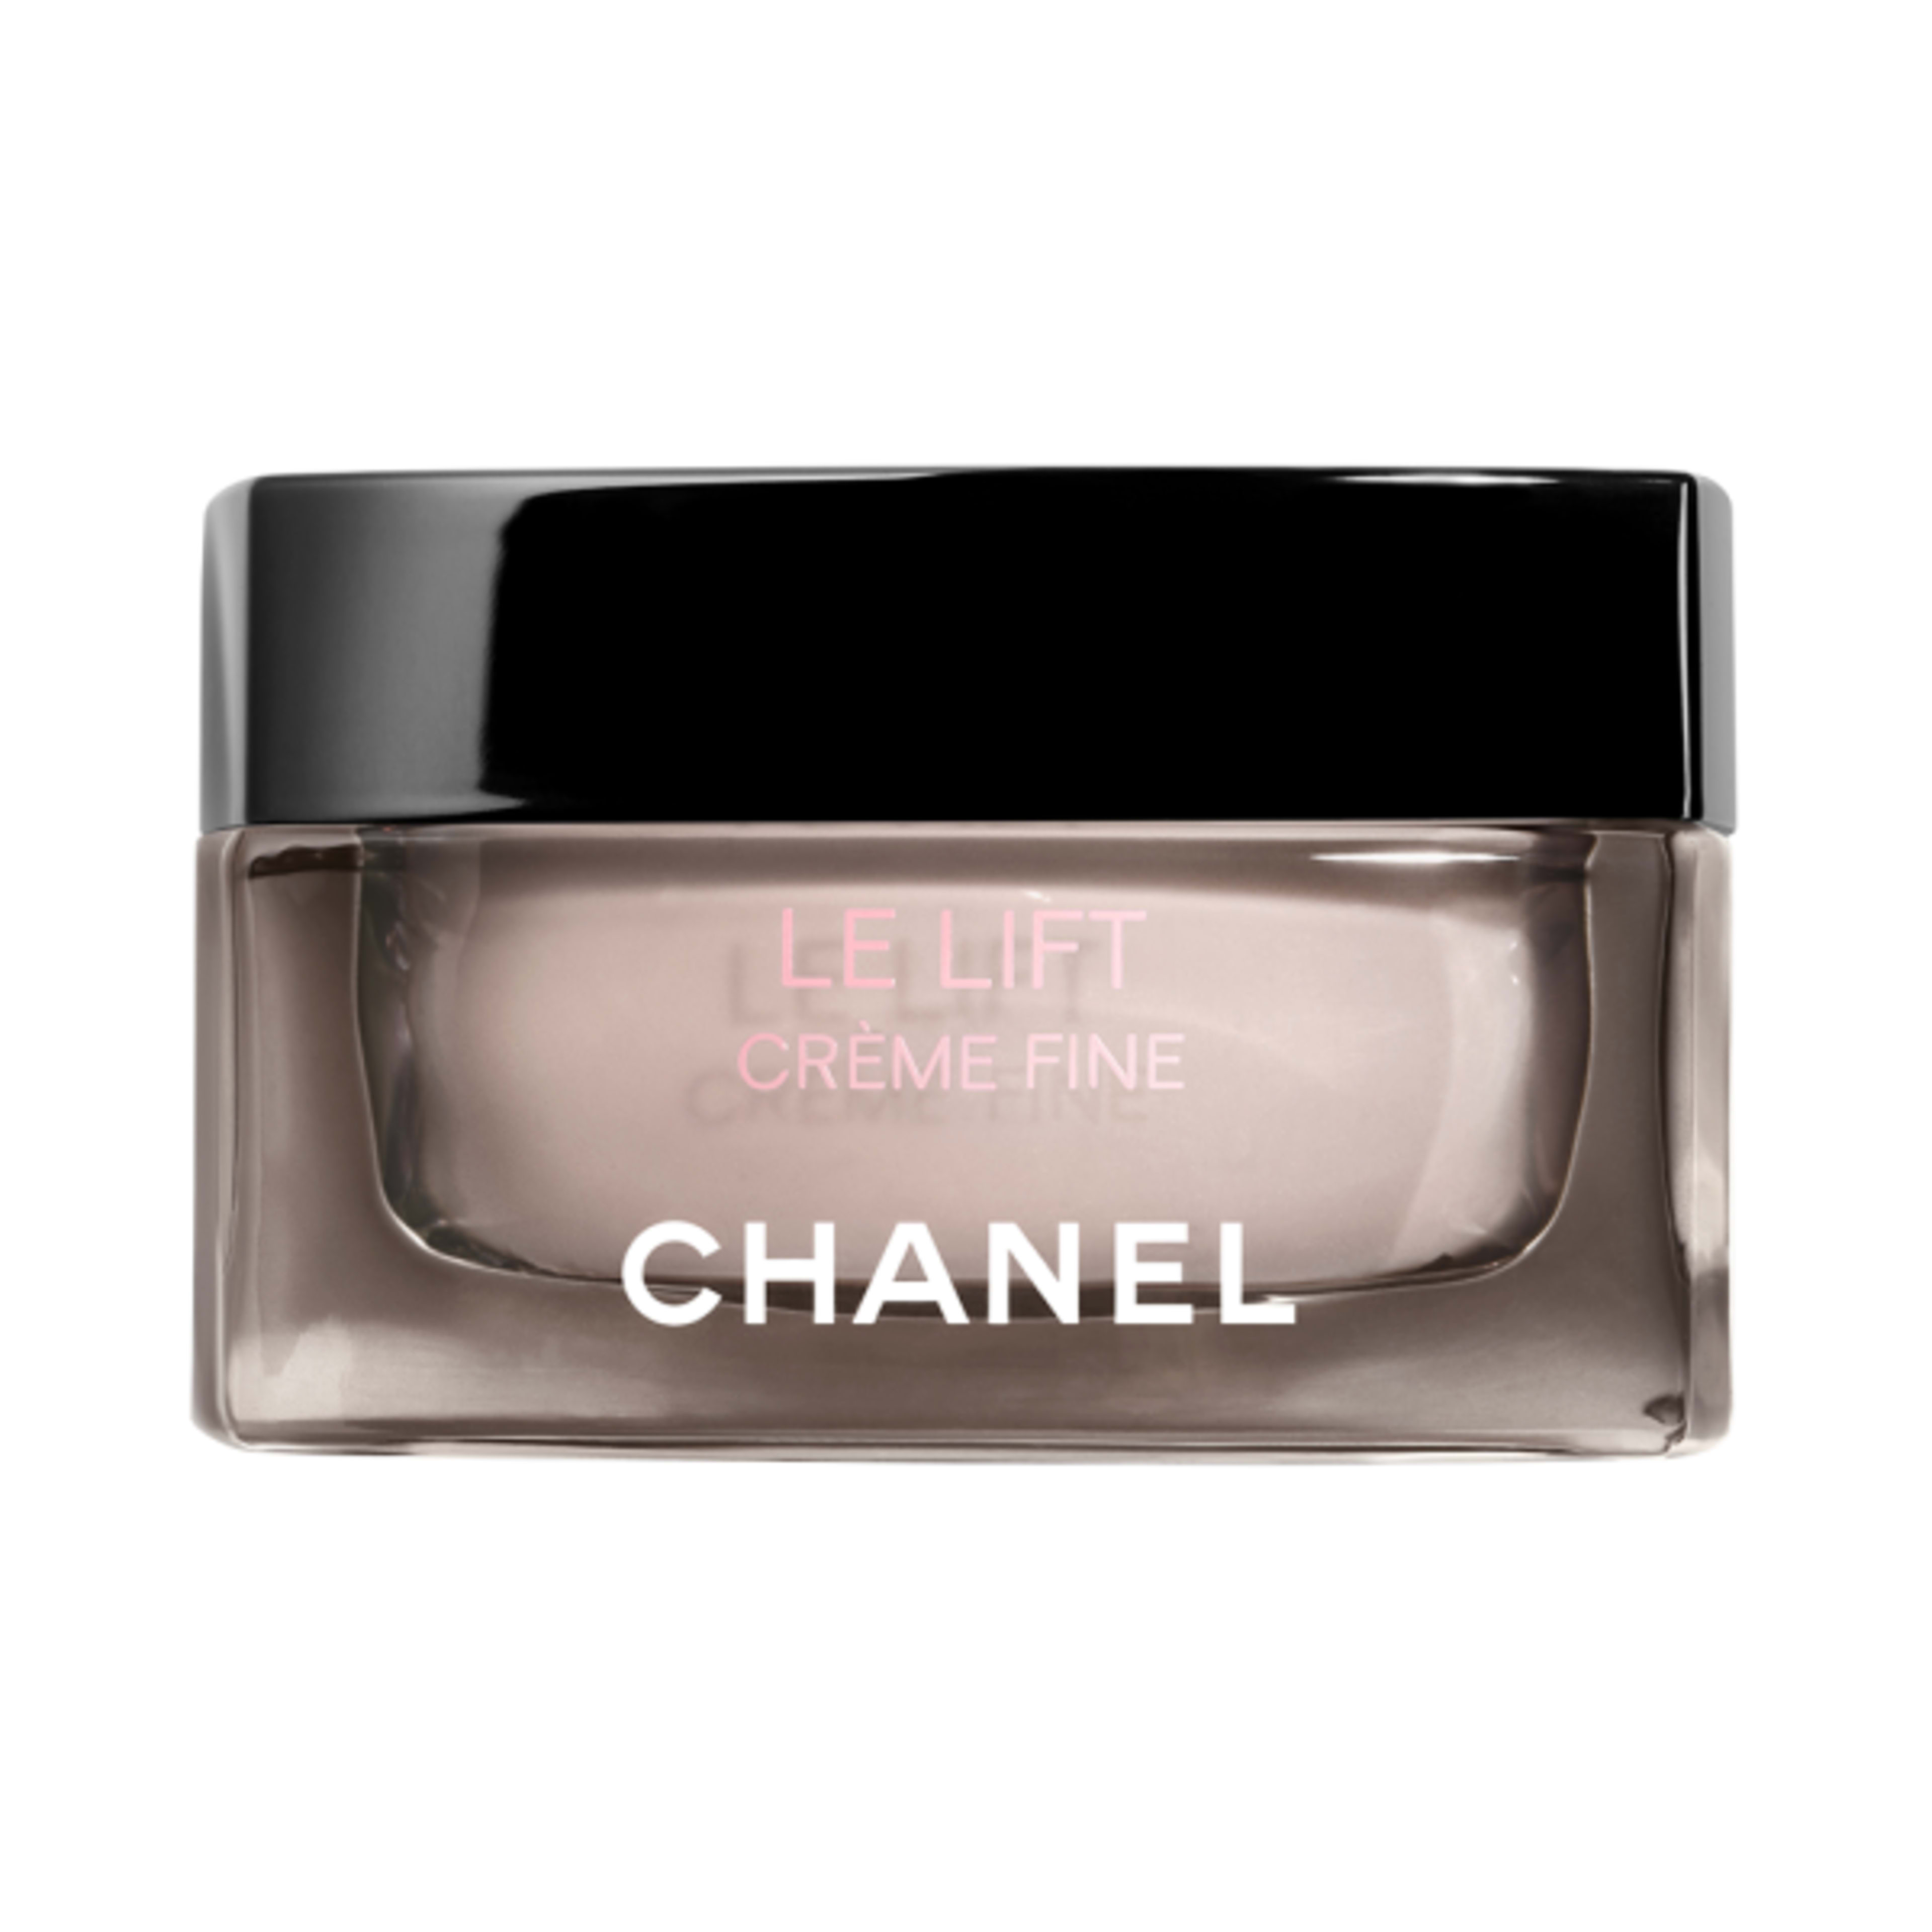 Chanel Le Lift Fine Creme SMOOTHING AND FIRMING Botanical Alfalfa Concentrate 50 ml